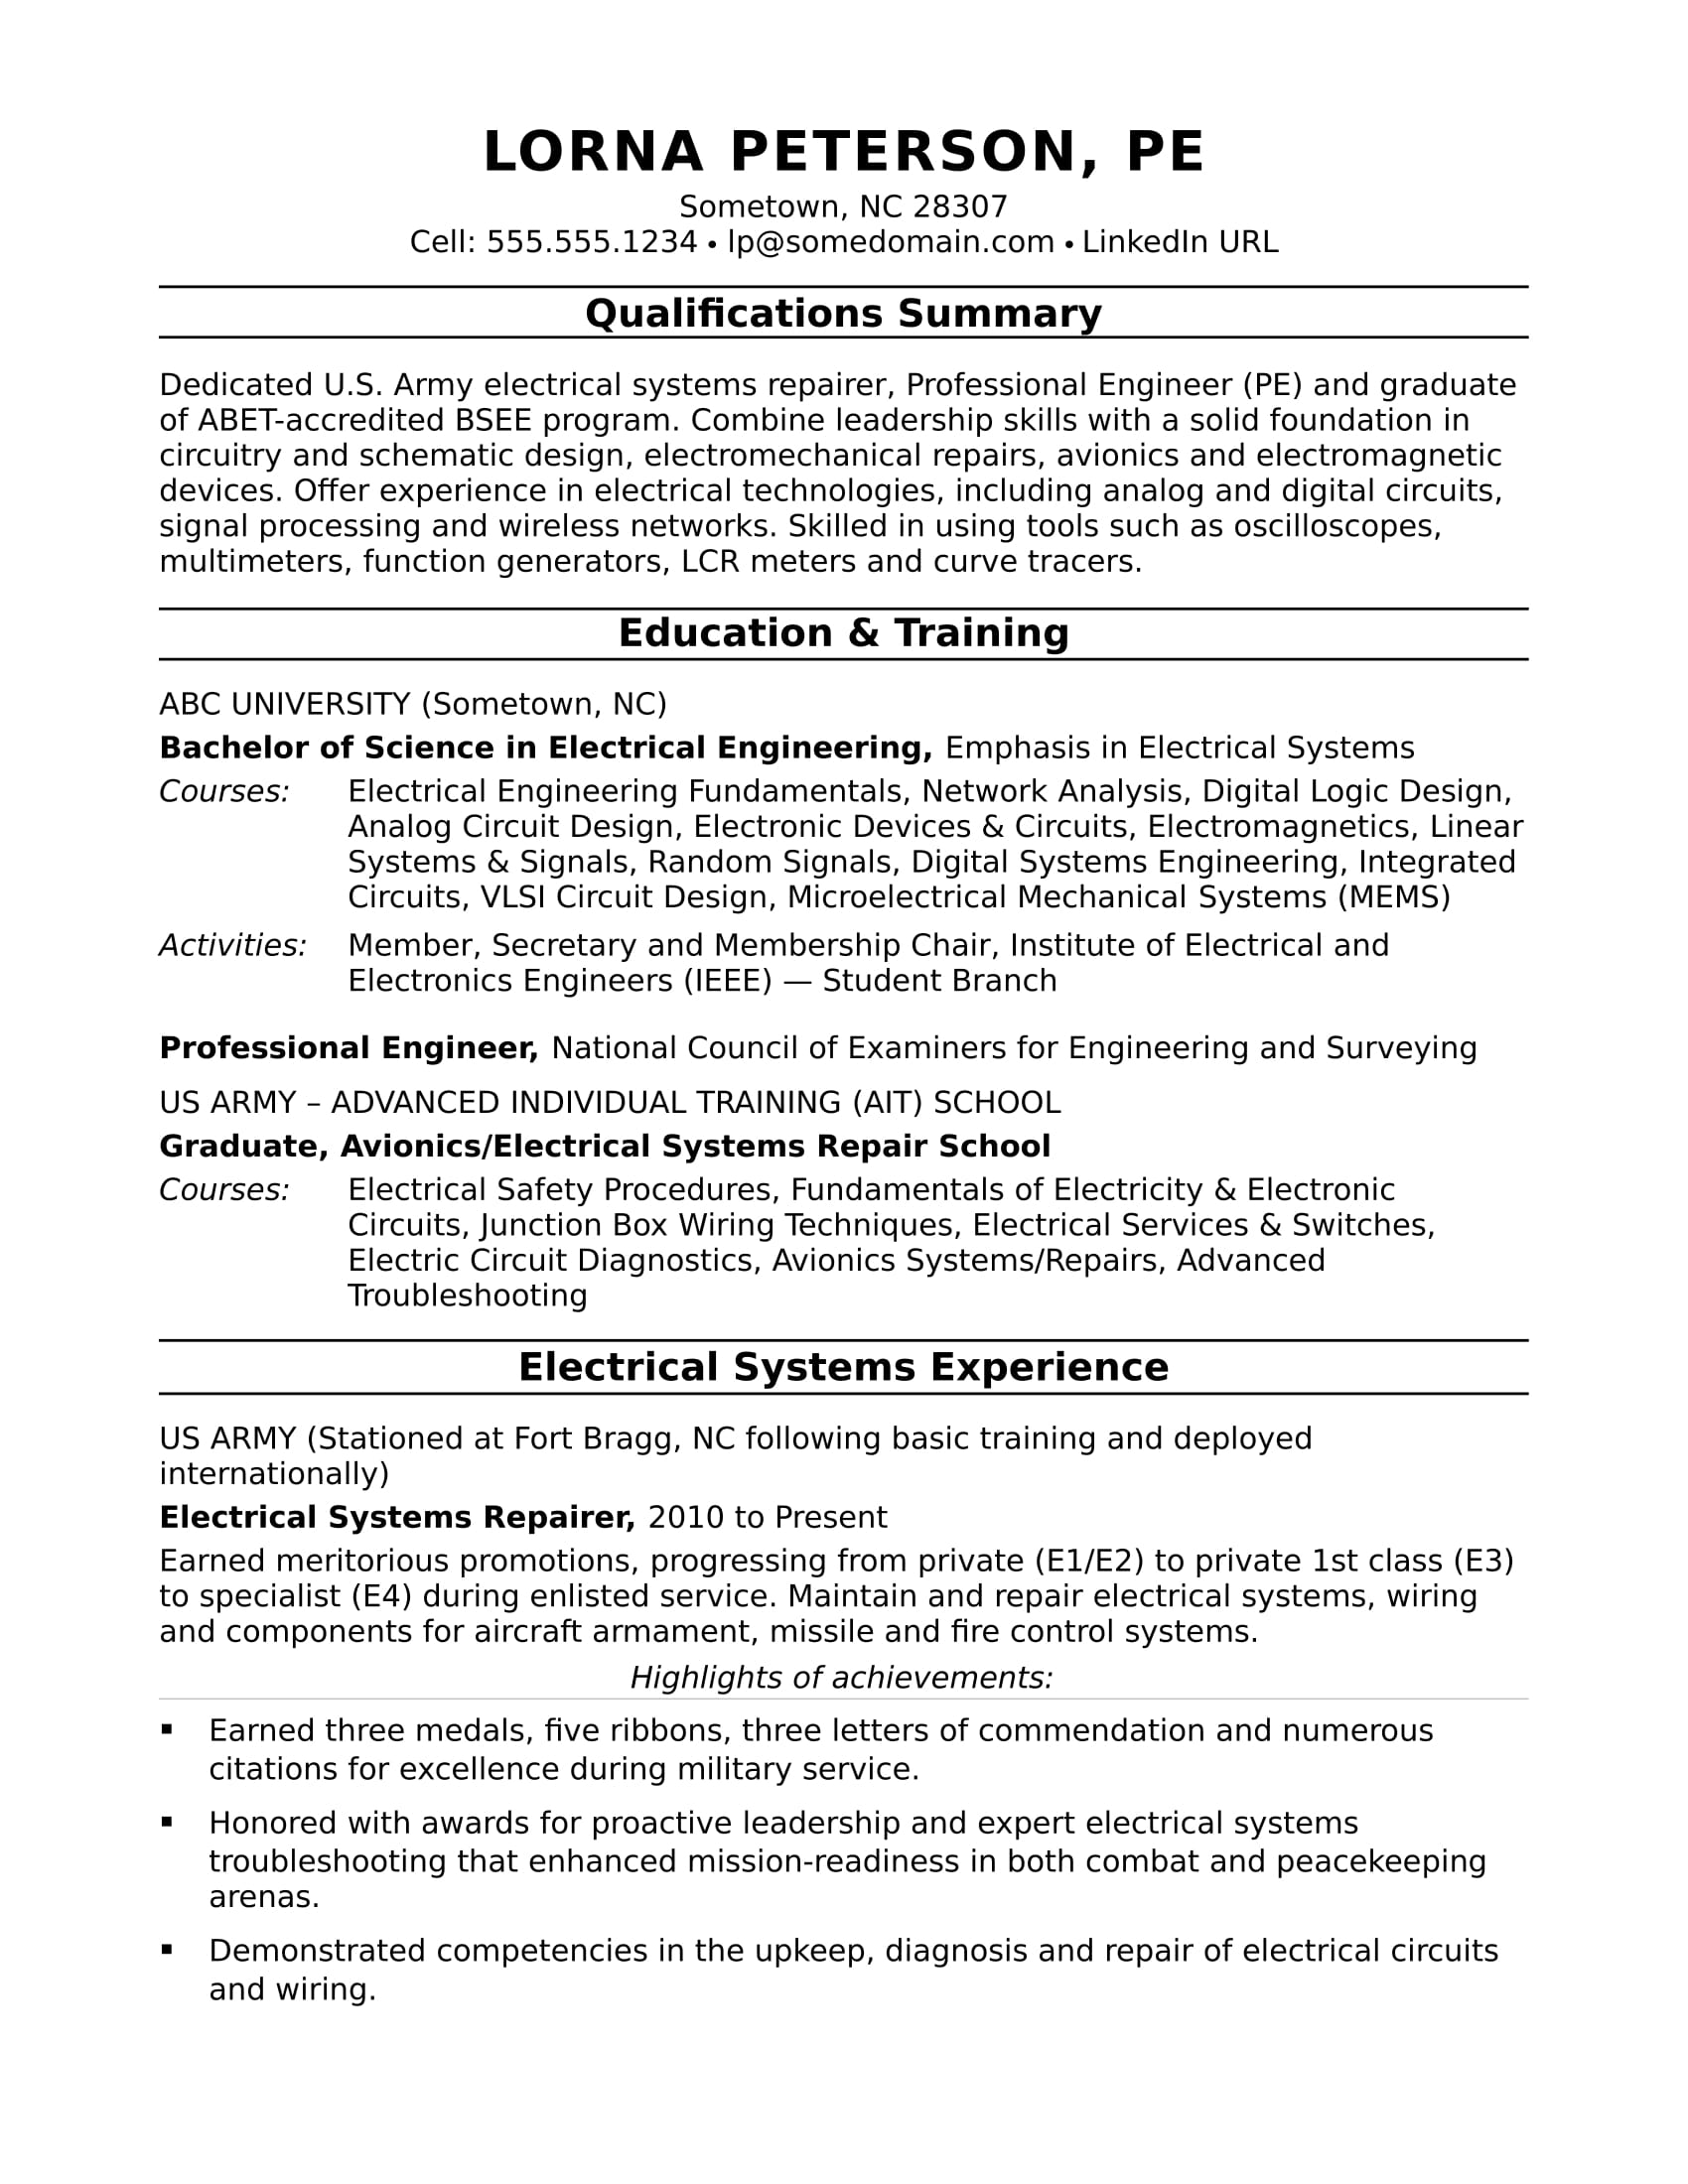 sample resume for a midlevel electrical engineer | monster